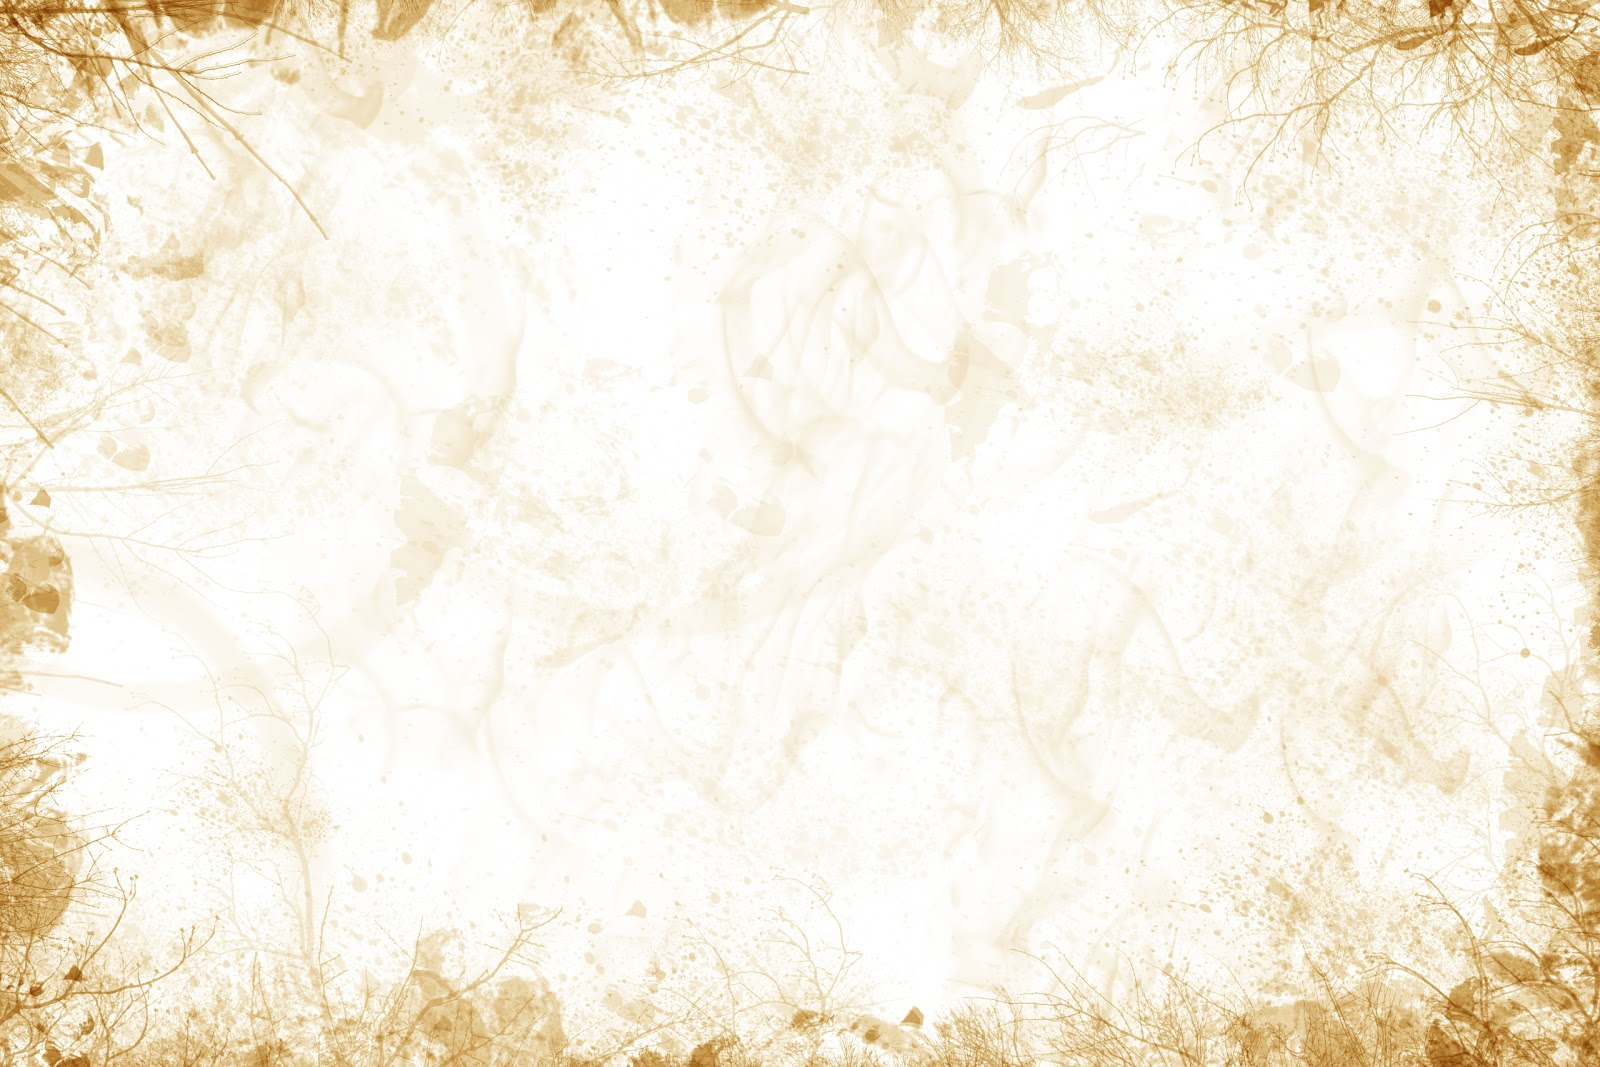 Wedding Background Texture Footage Page 3: Background Texture Images3 HQ Free Download